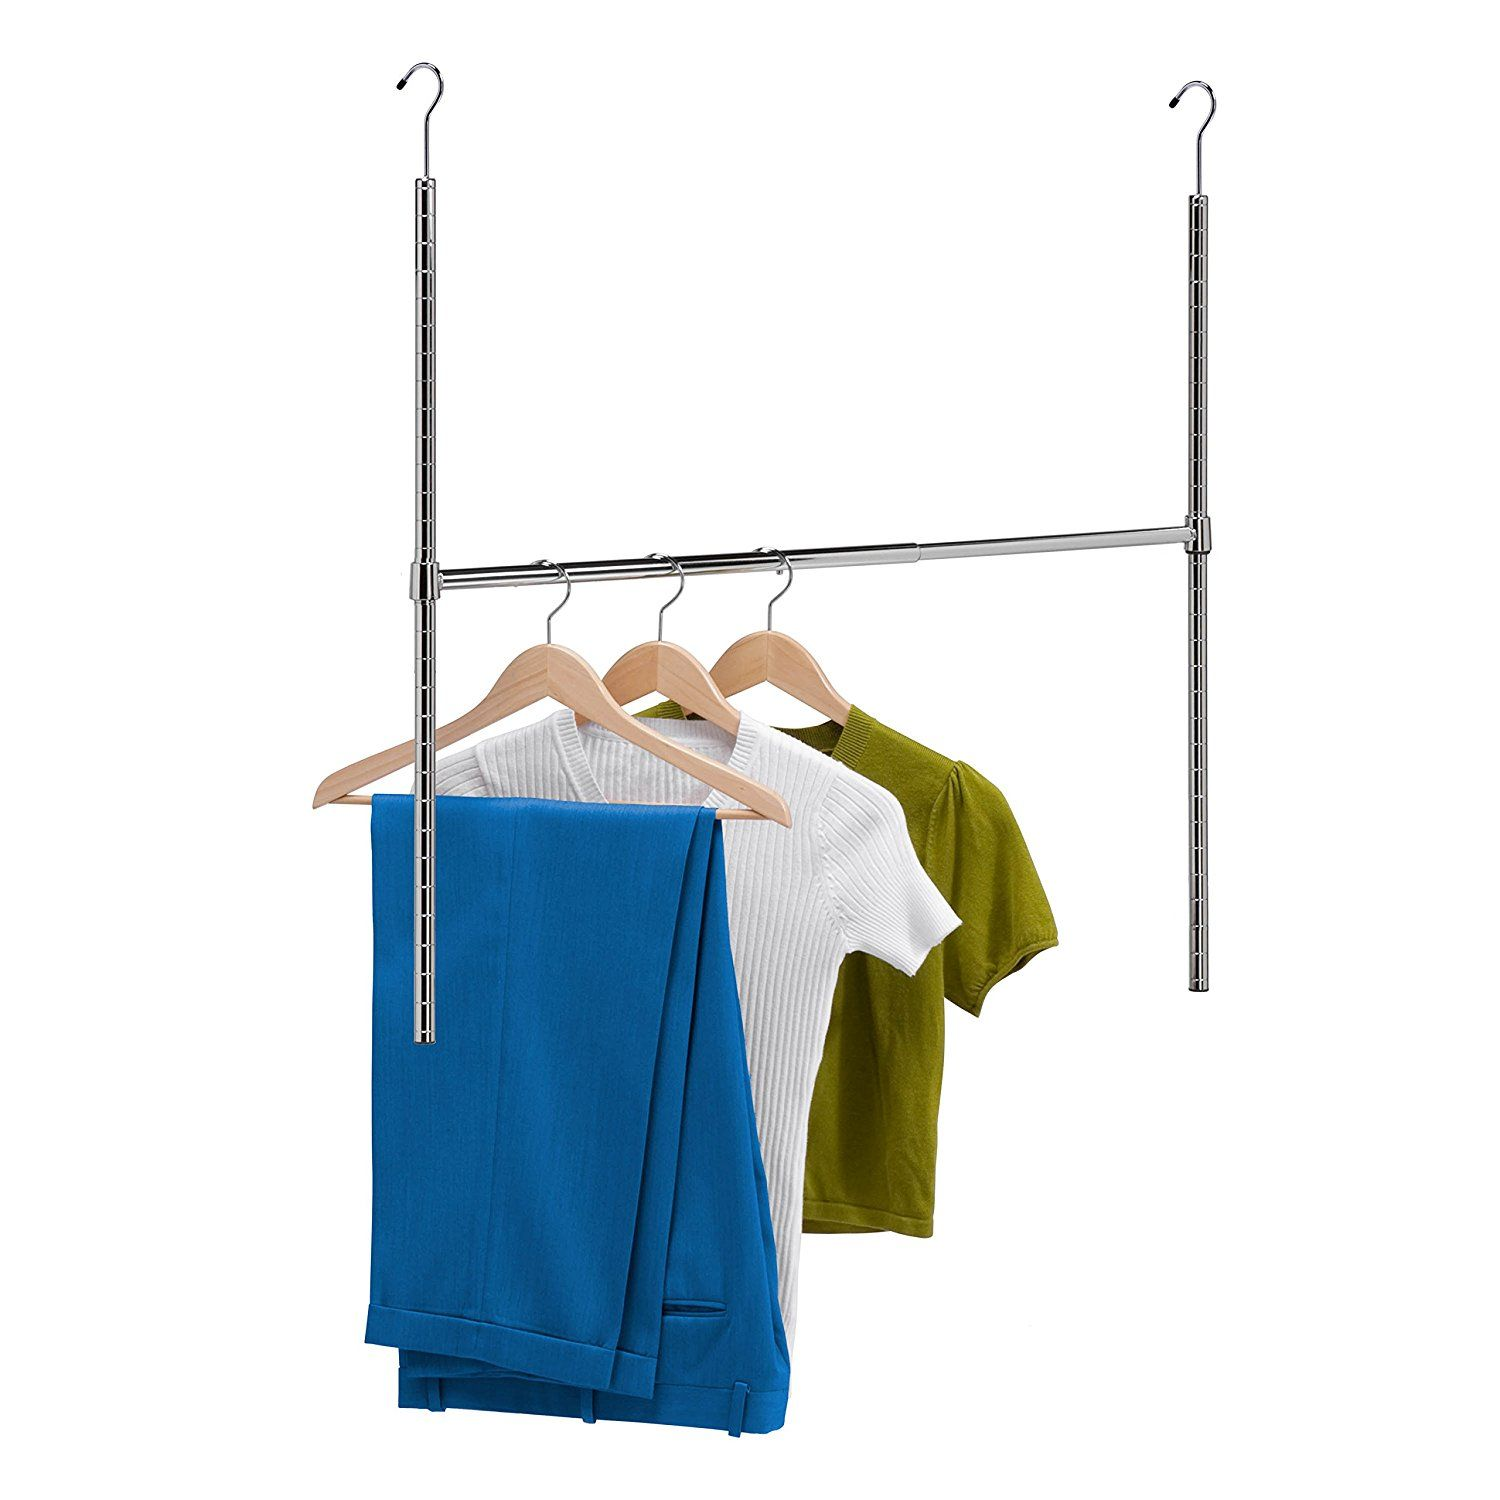 Double Closet Rod Height Amazon Honeycando Hng01816 Chrome Adjustable Hanging Closet